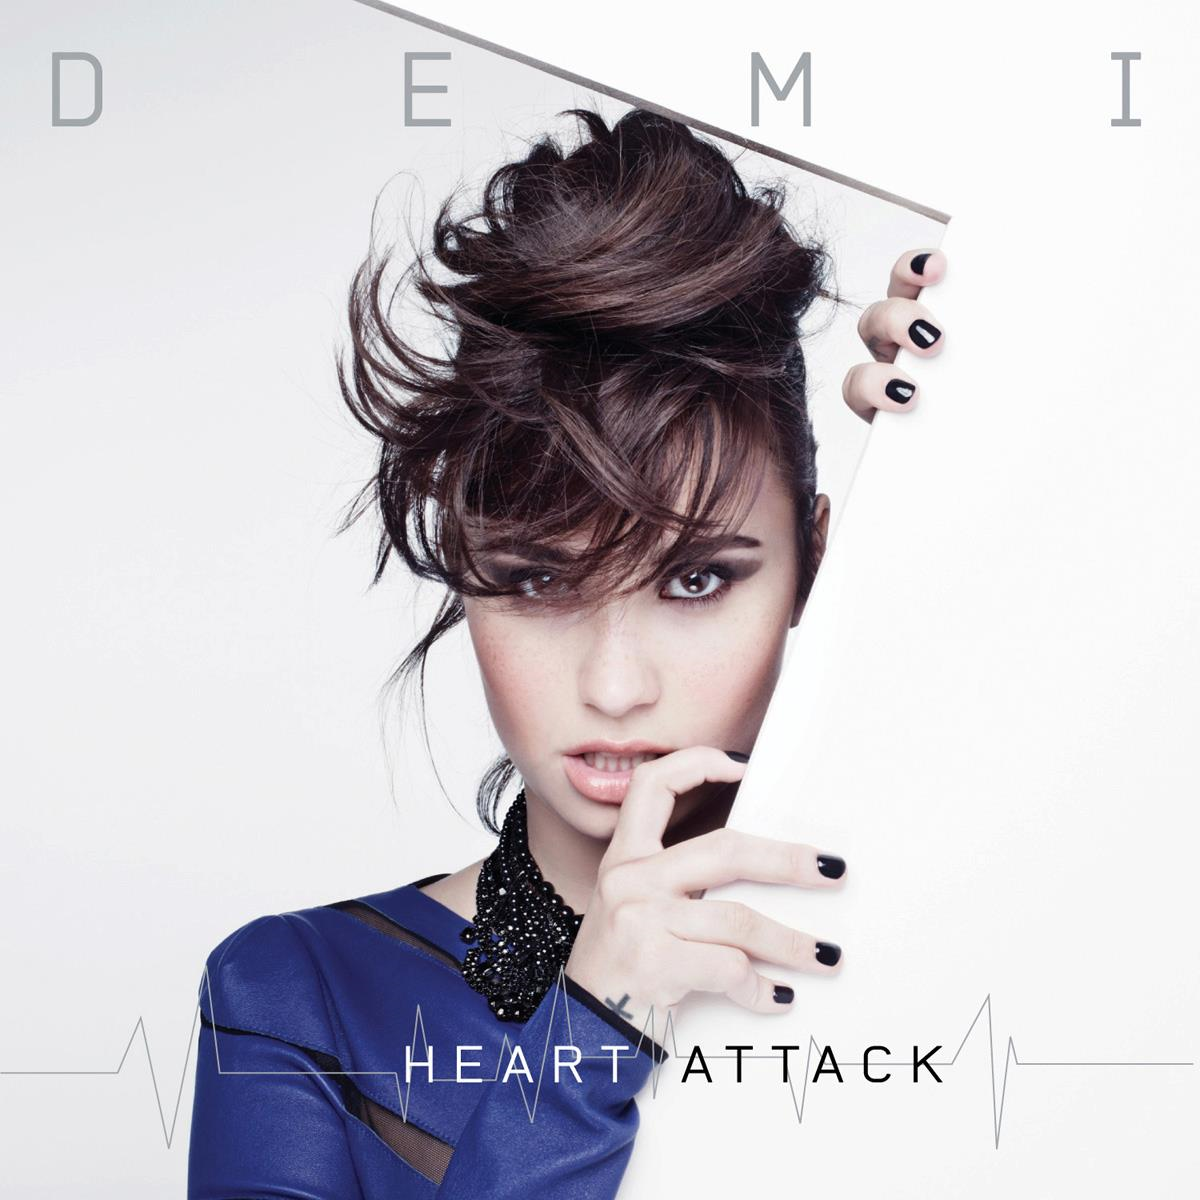 COVER - Heart Attack.png - Heart Attack PNG HD